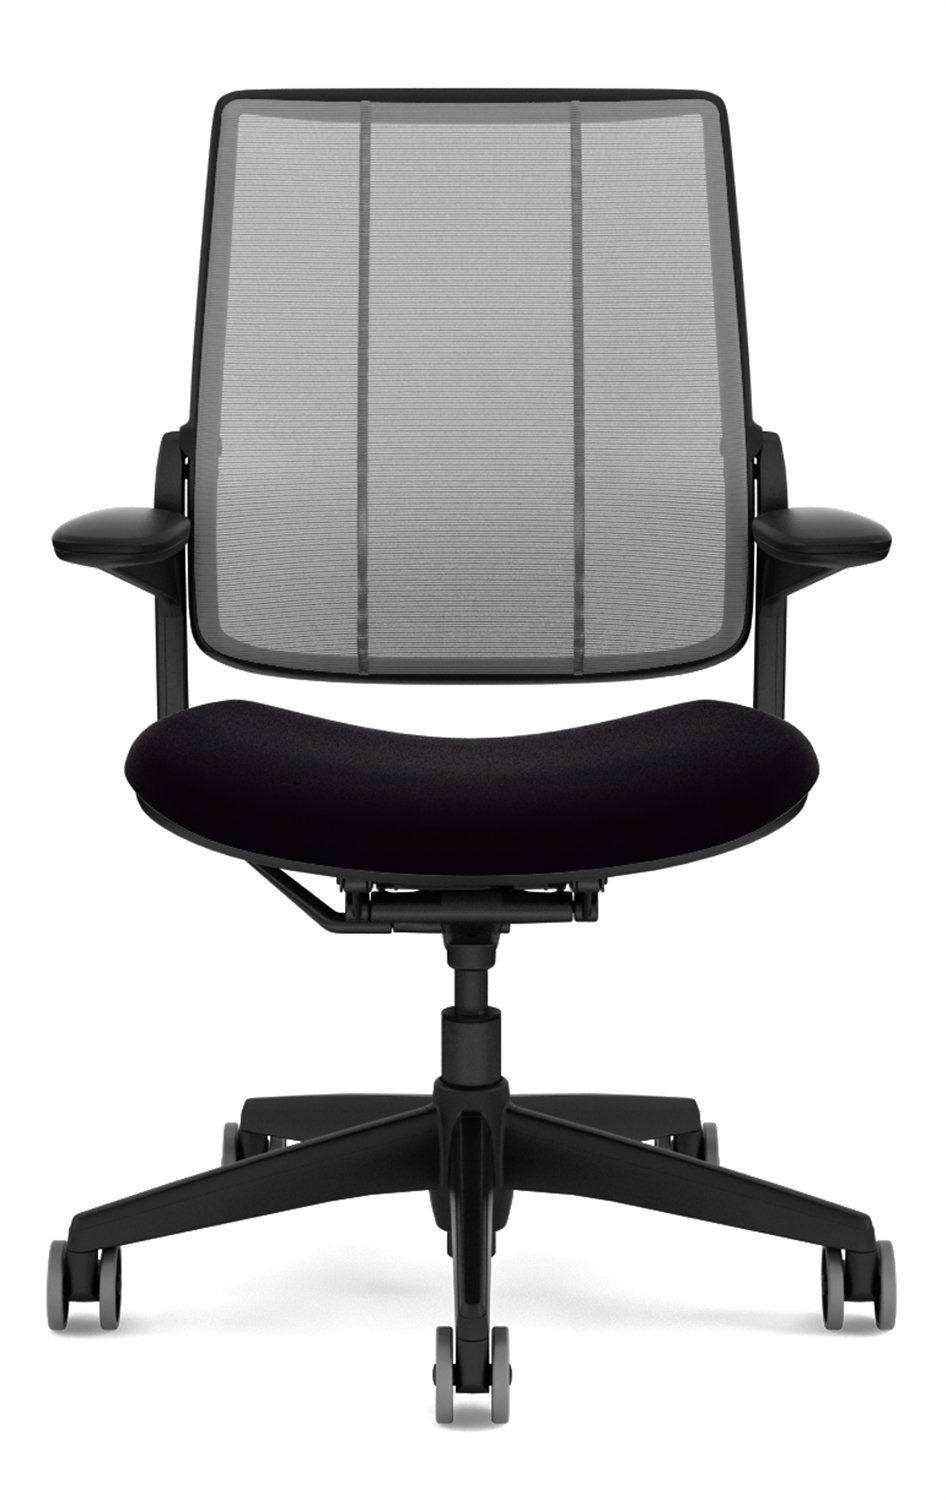 Steelcase Gesture Office Chair Vs Humanscale Diffrient Smart Office Chair Slant